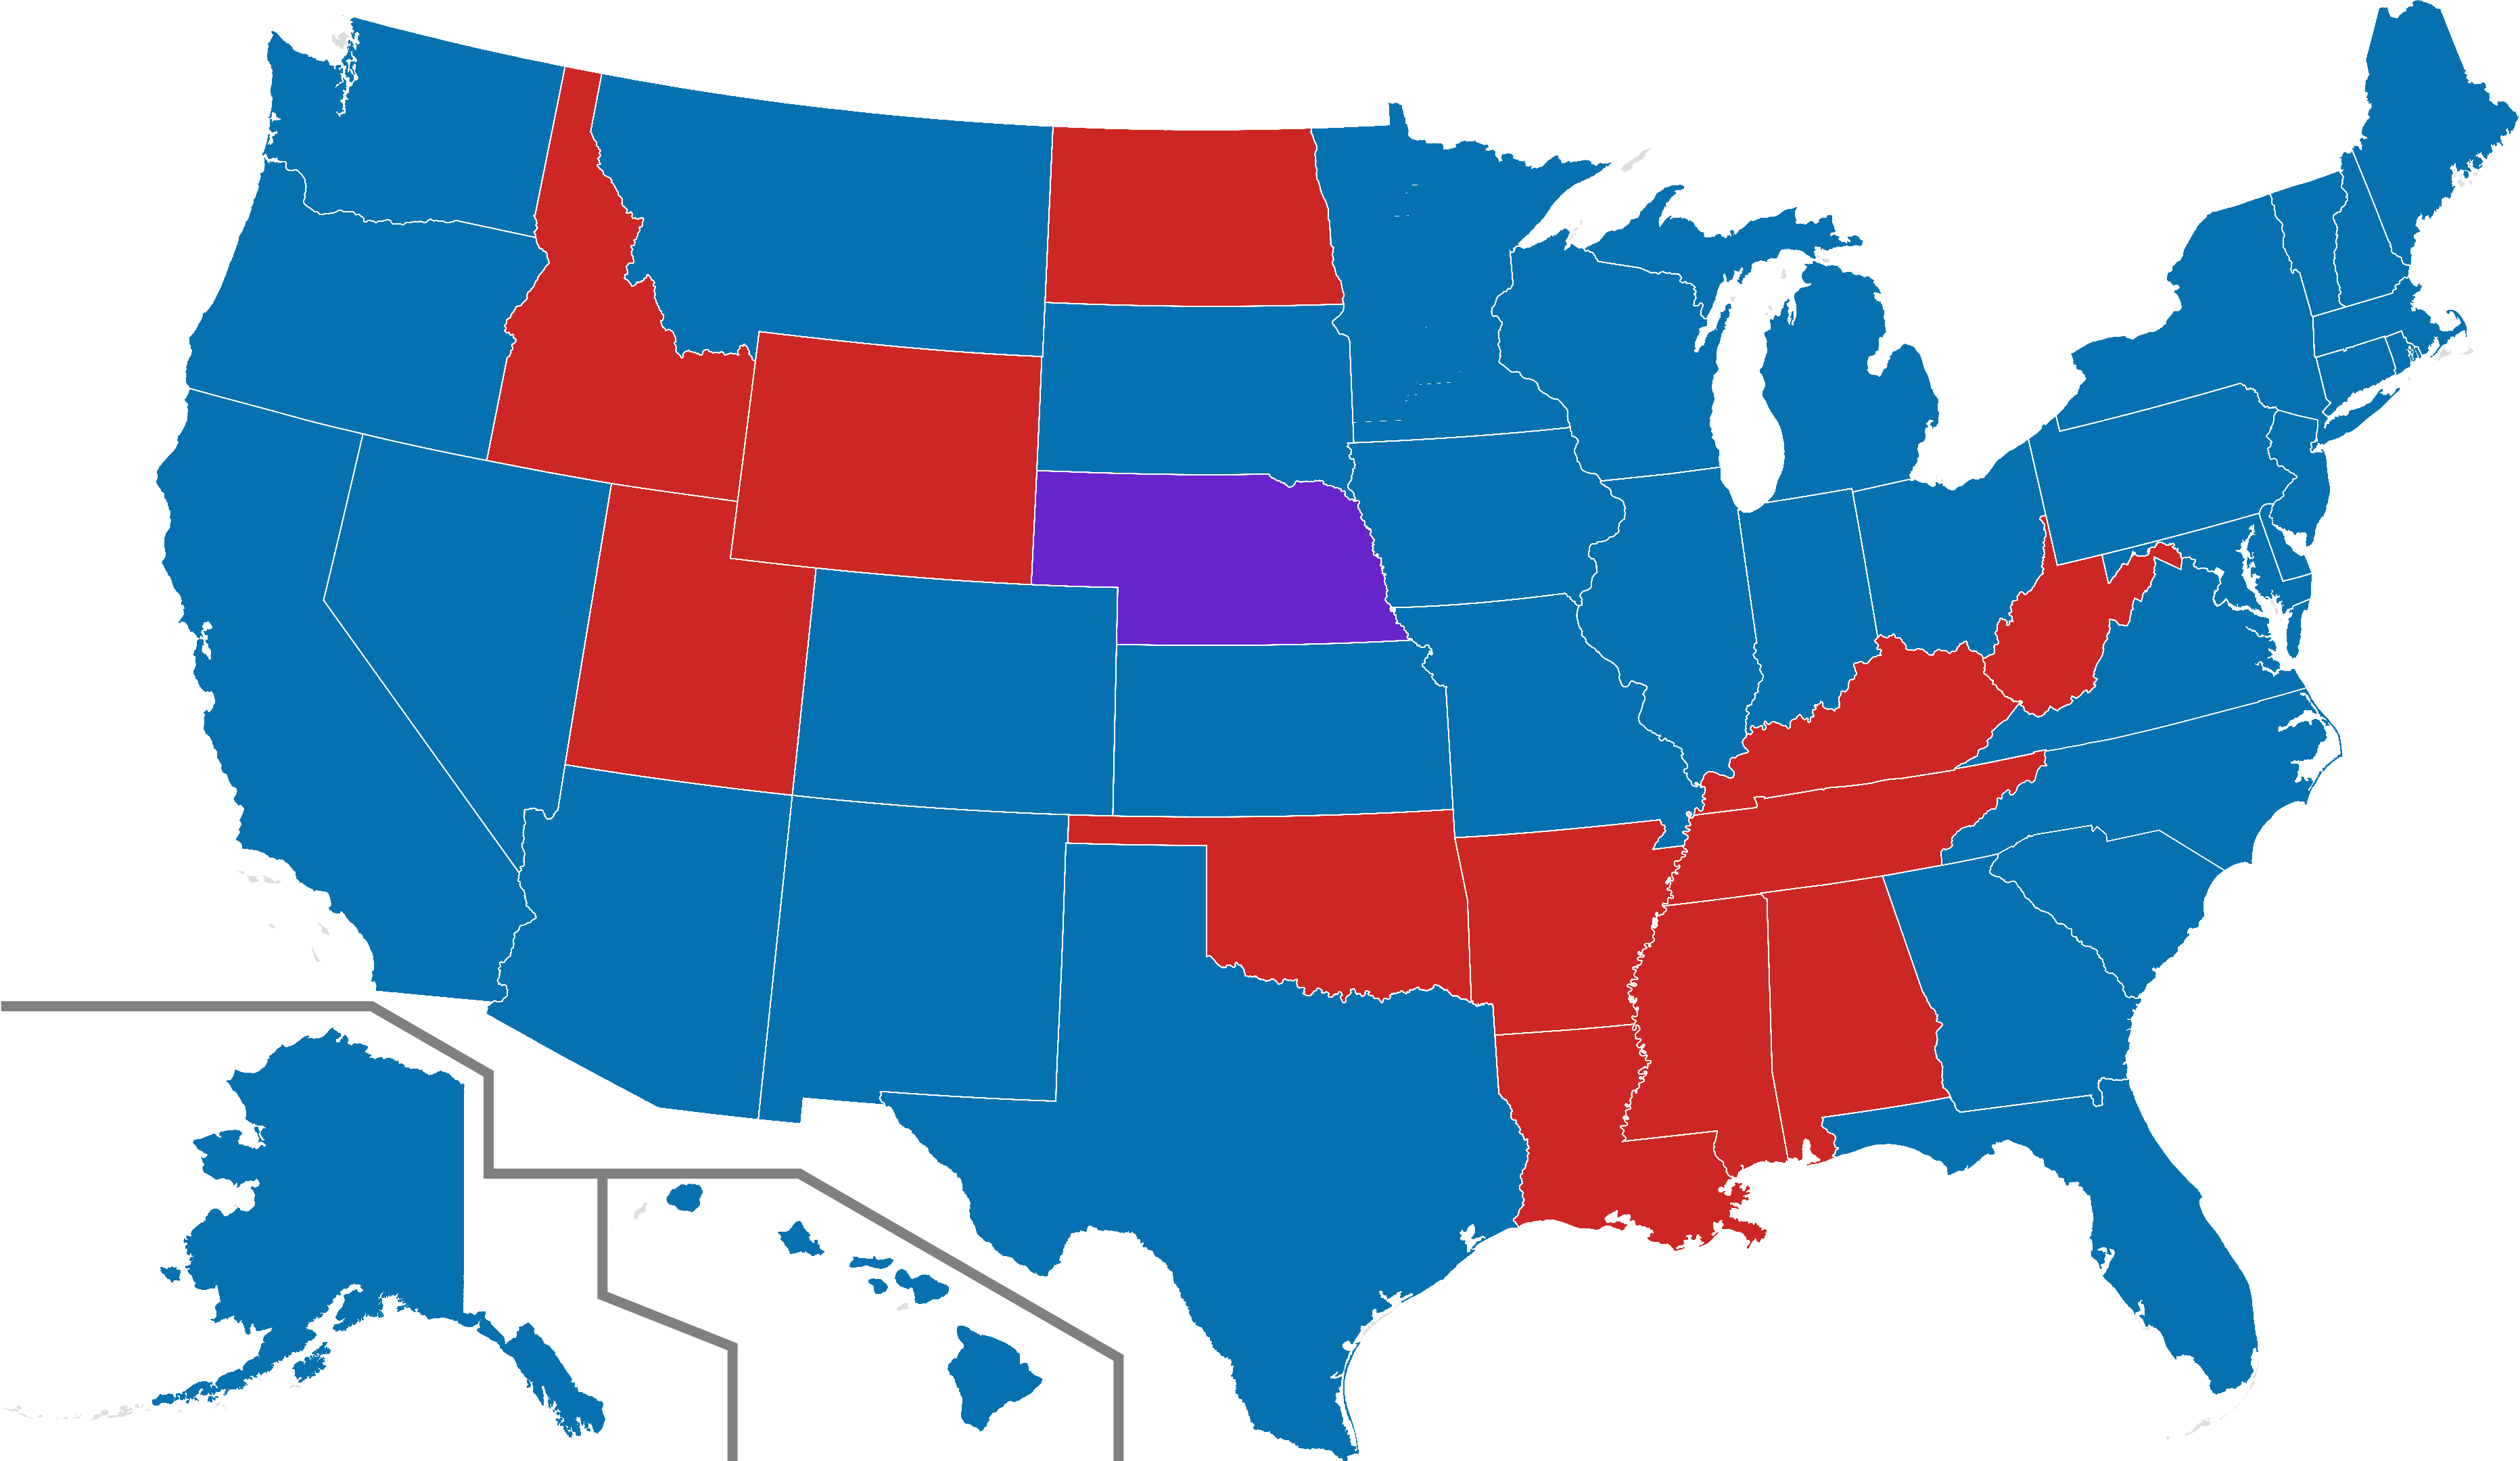 2016 Us Presidential Election Polling Map Gender Gap - Us Senate Map 2019 Clipart (3726x2160), Png Download